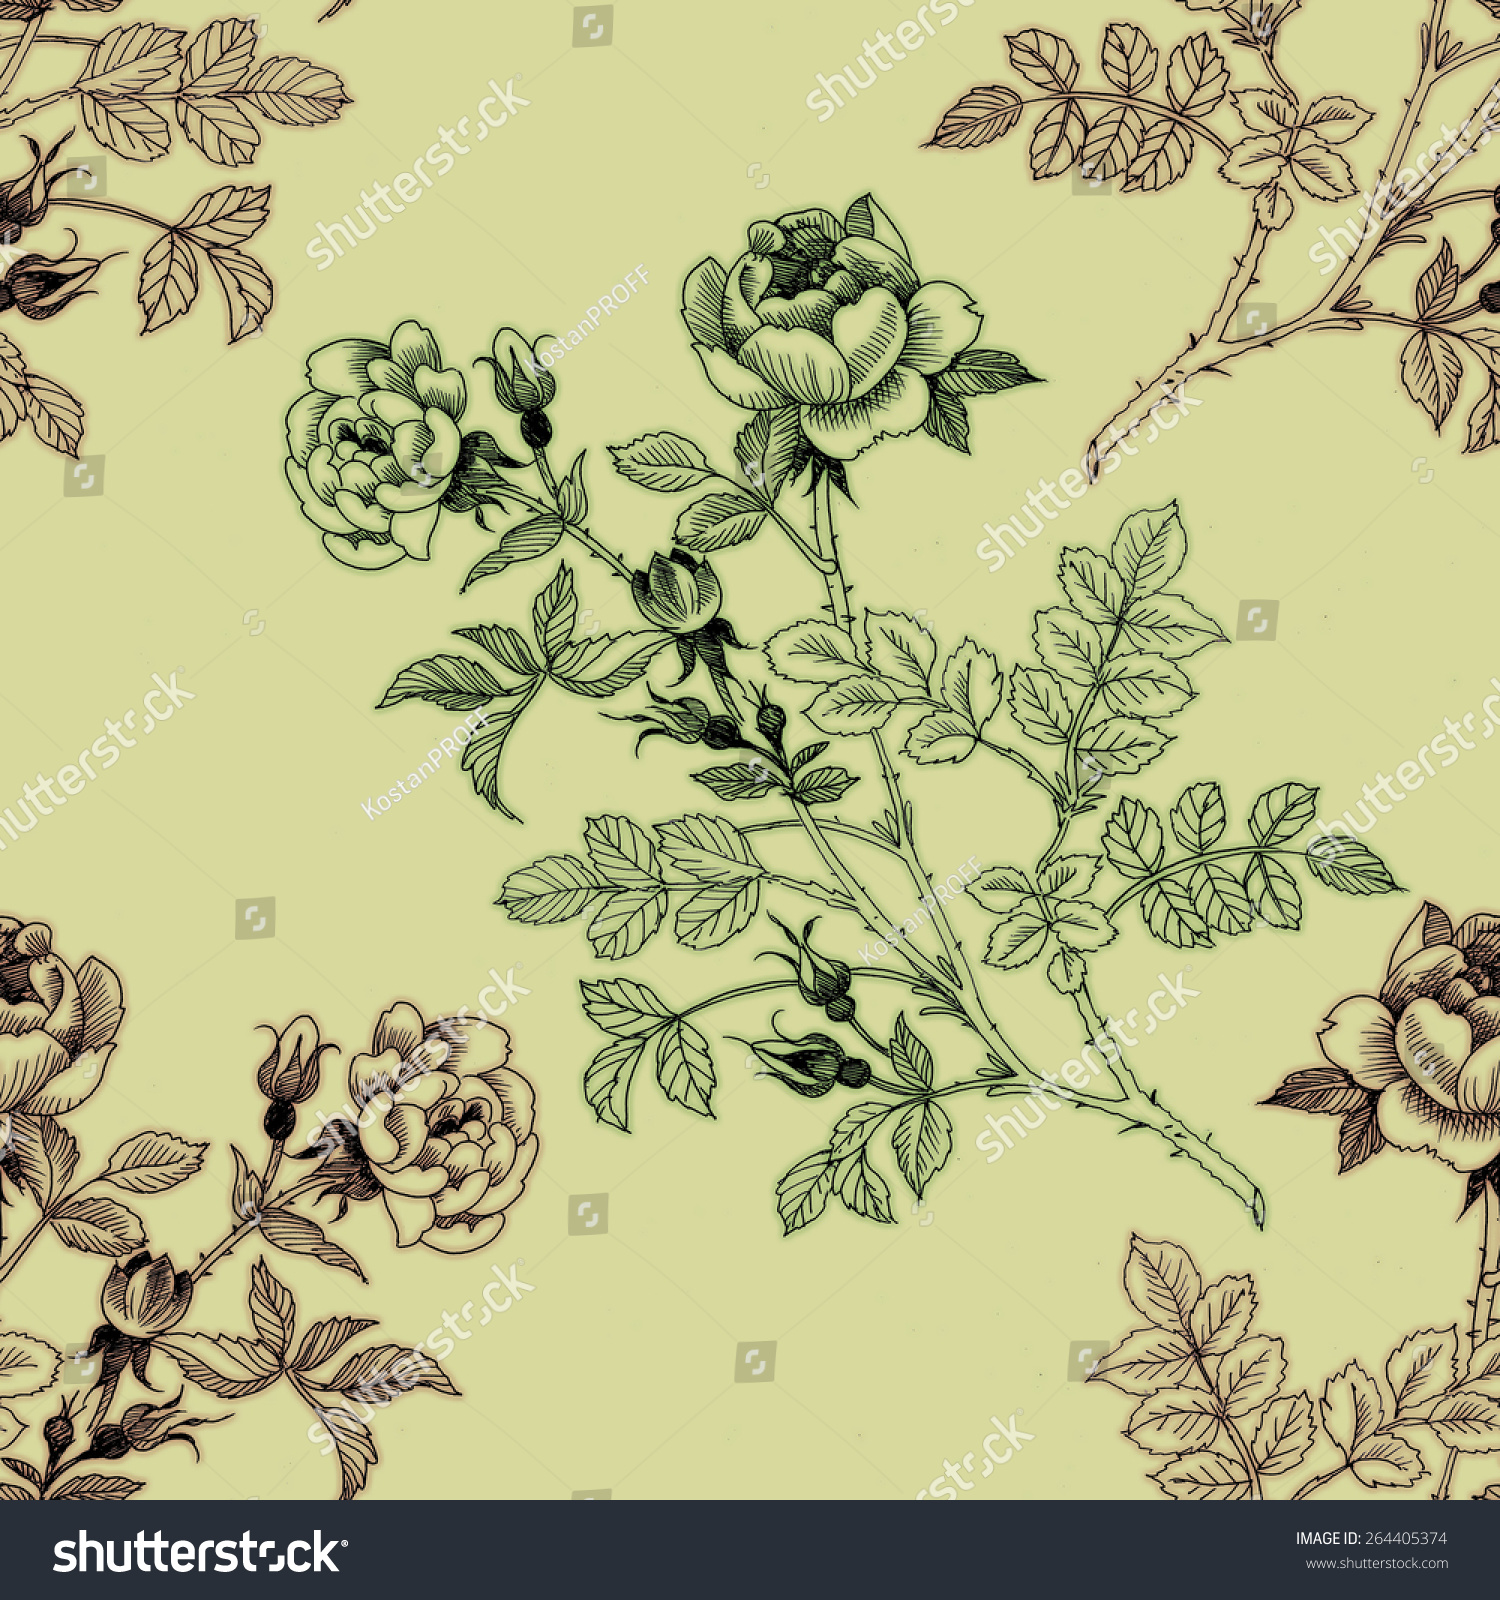 Floral ornament with branches in vintage style | EZ Canvas